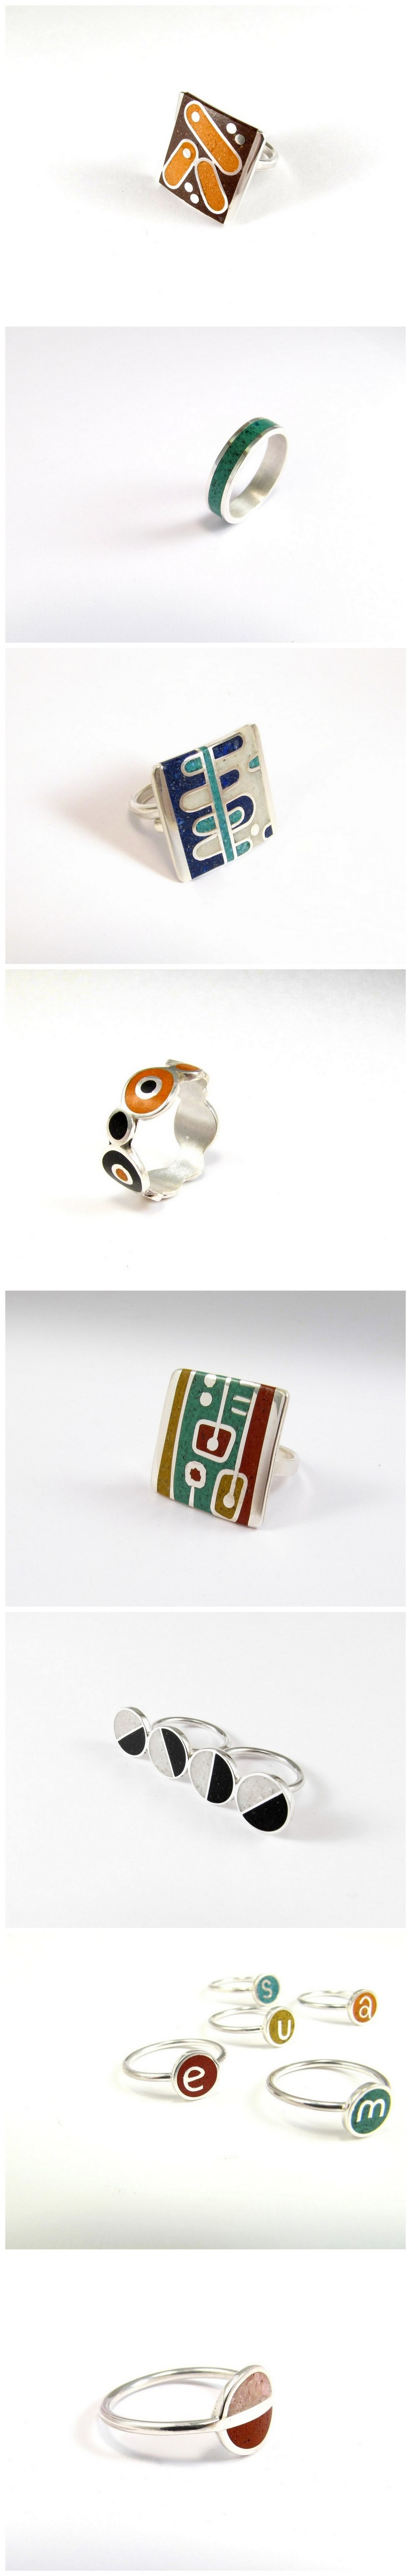 Collection of rings by Maldonadojoyas  http://www.etsy.com/shop/maldonadojoyas?section_id=7841998